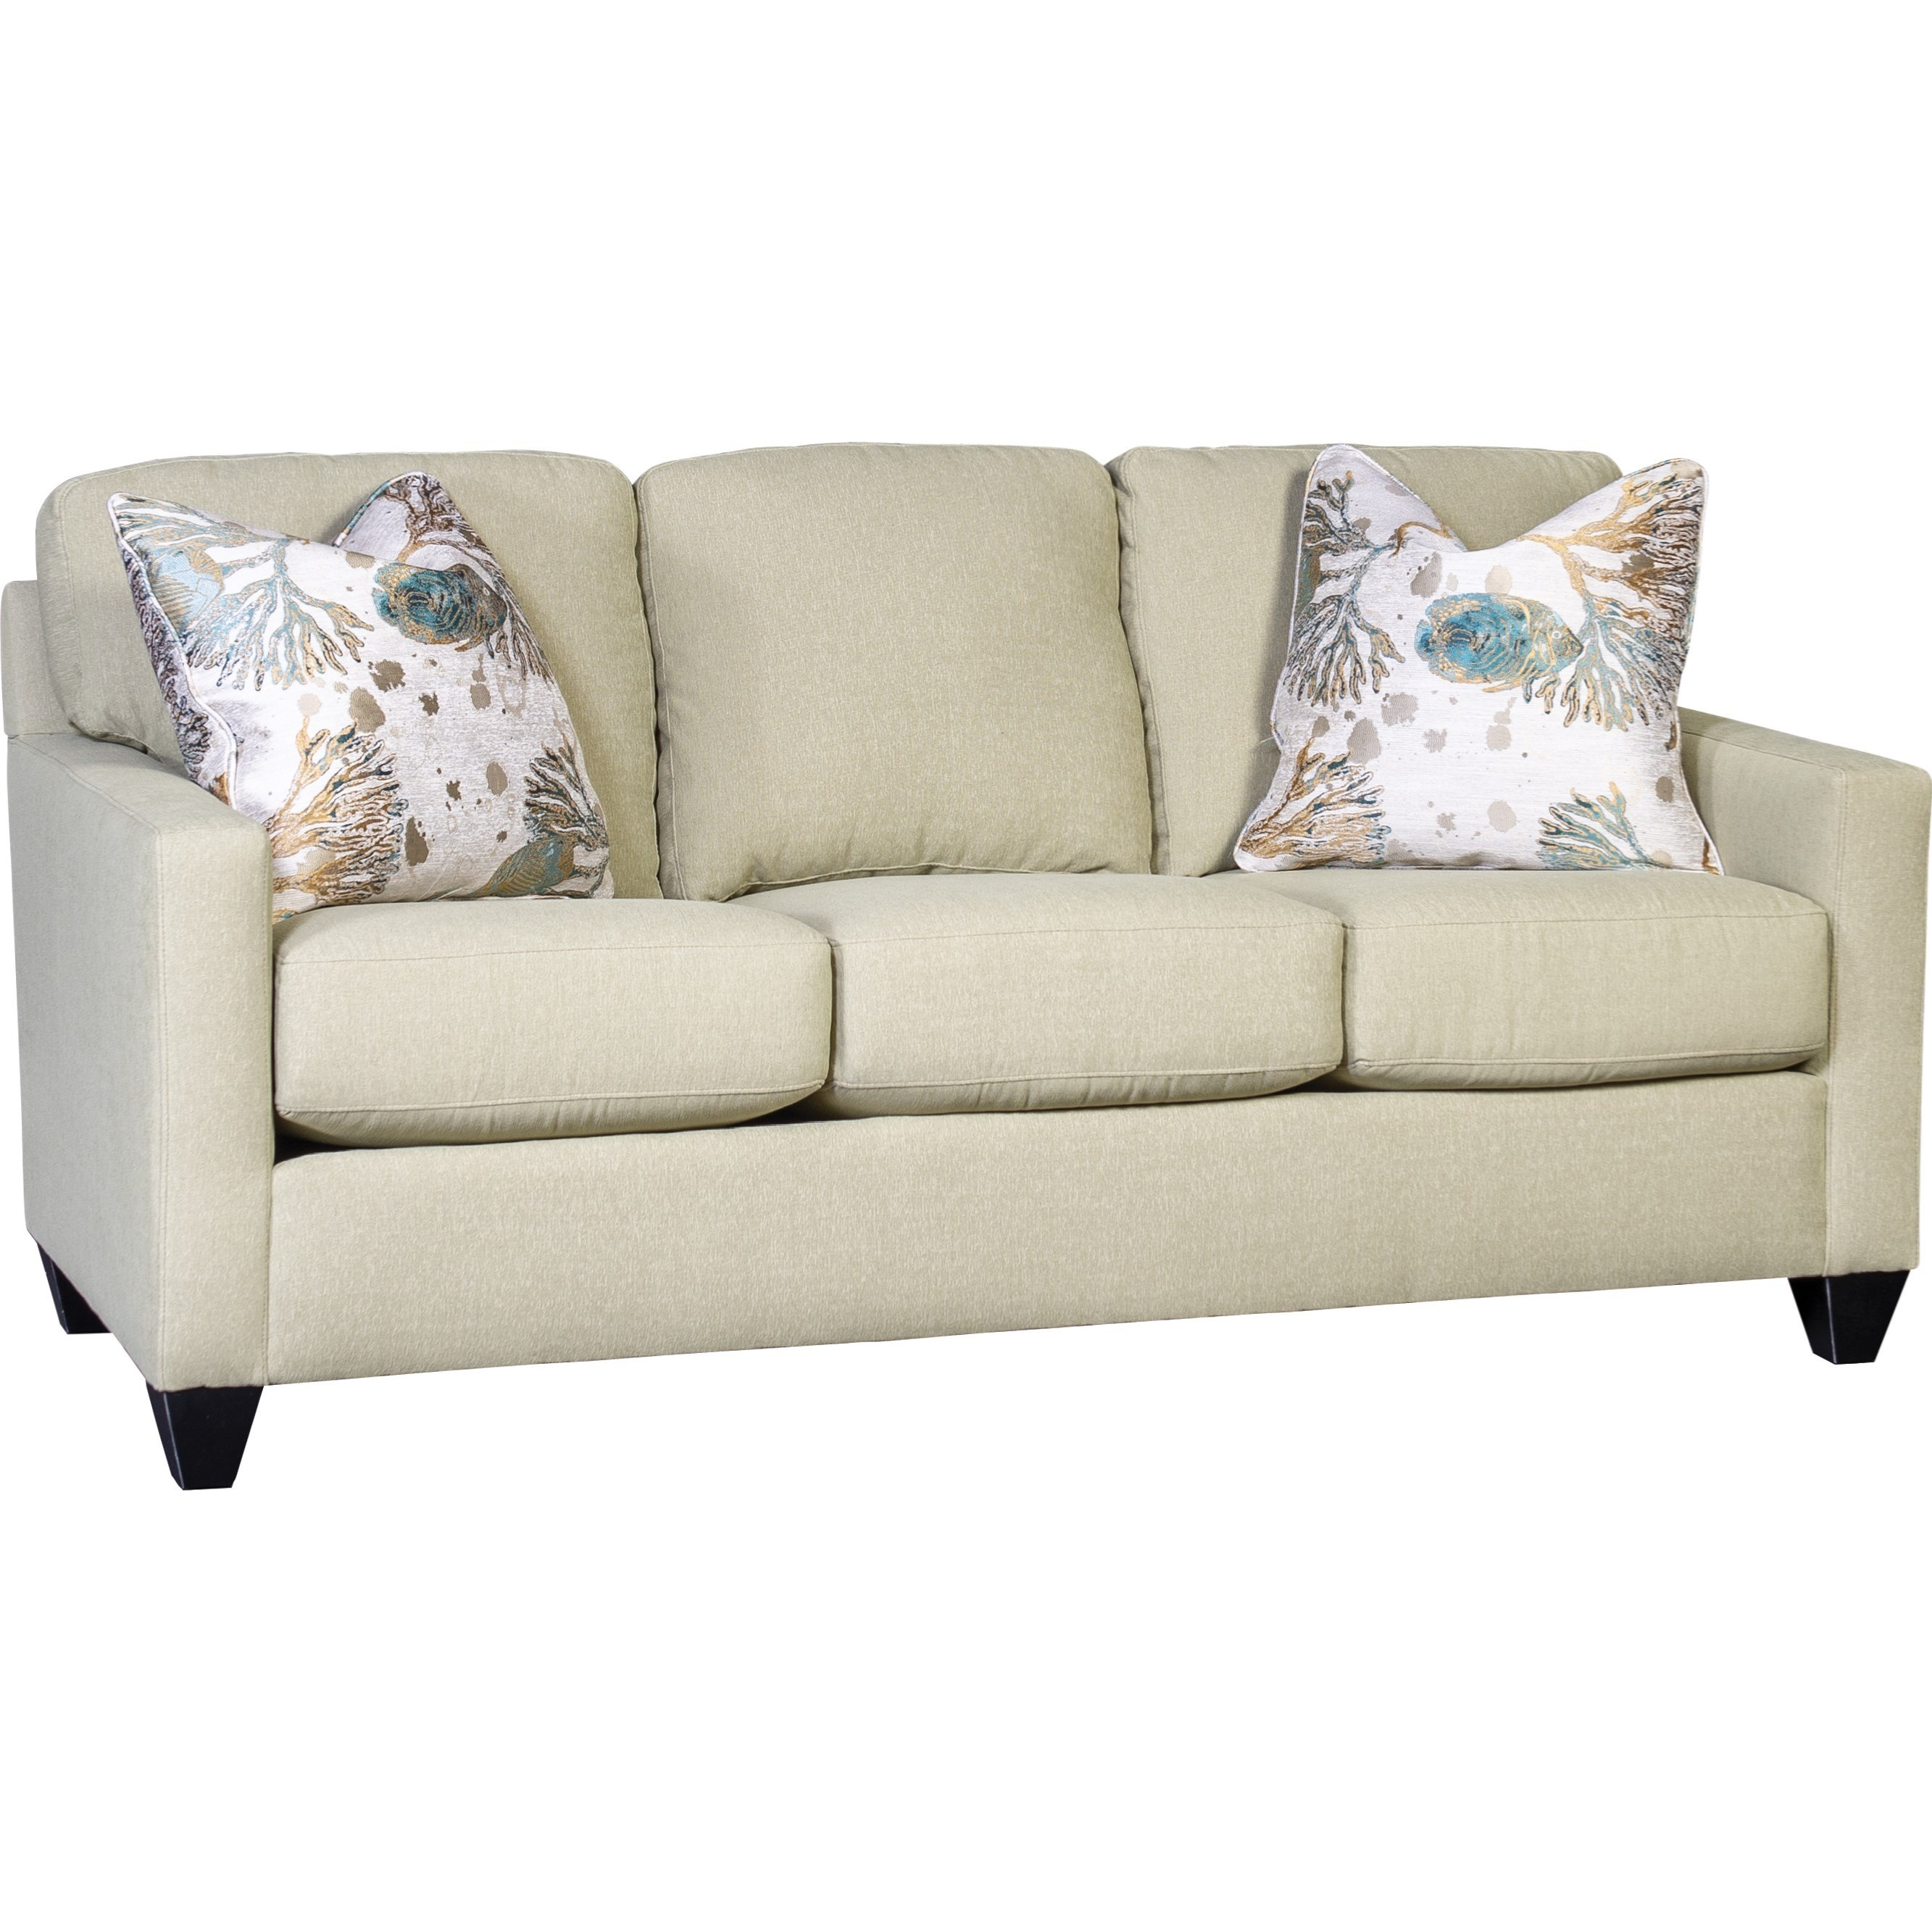 3488 Sofa by Mayo at Wilcox Furniture